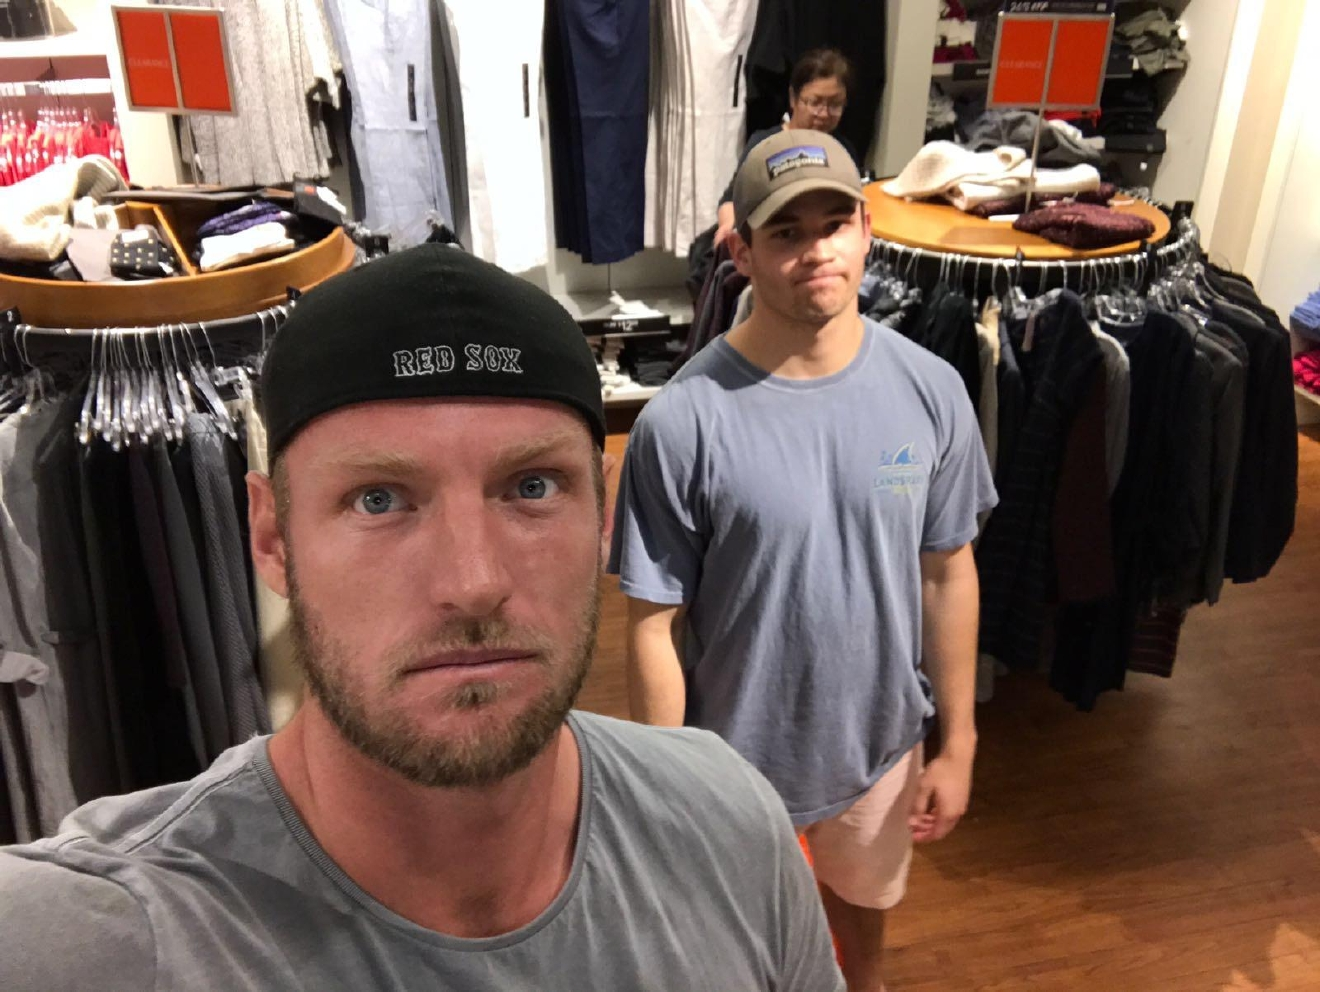 Sam snaps a photo with a friend while waiting for the girls to shop